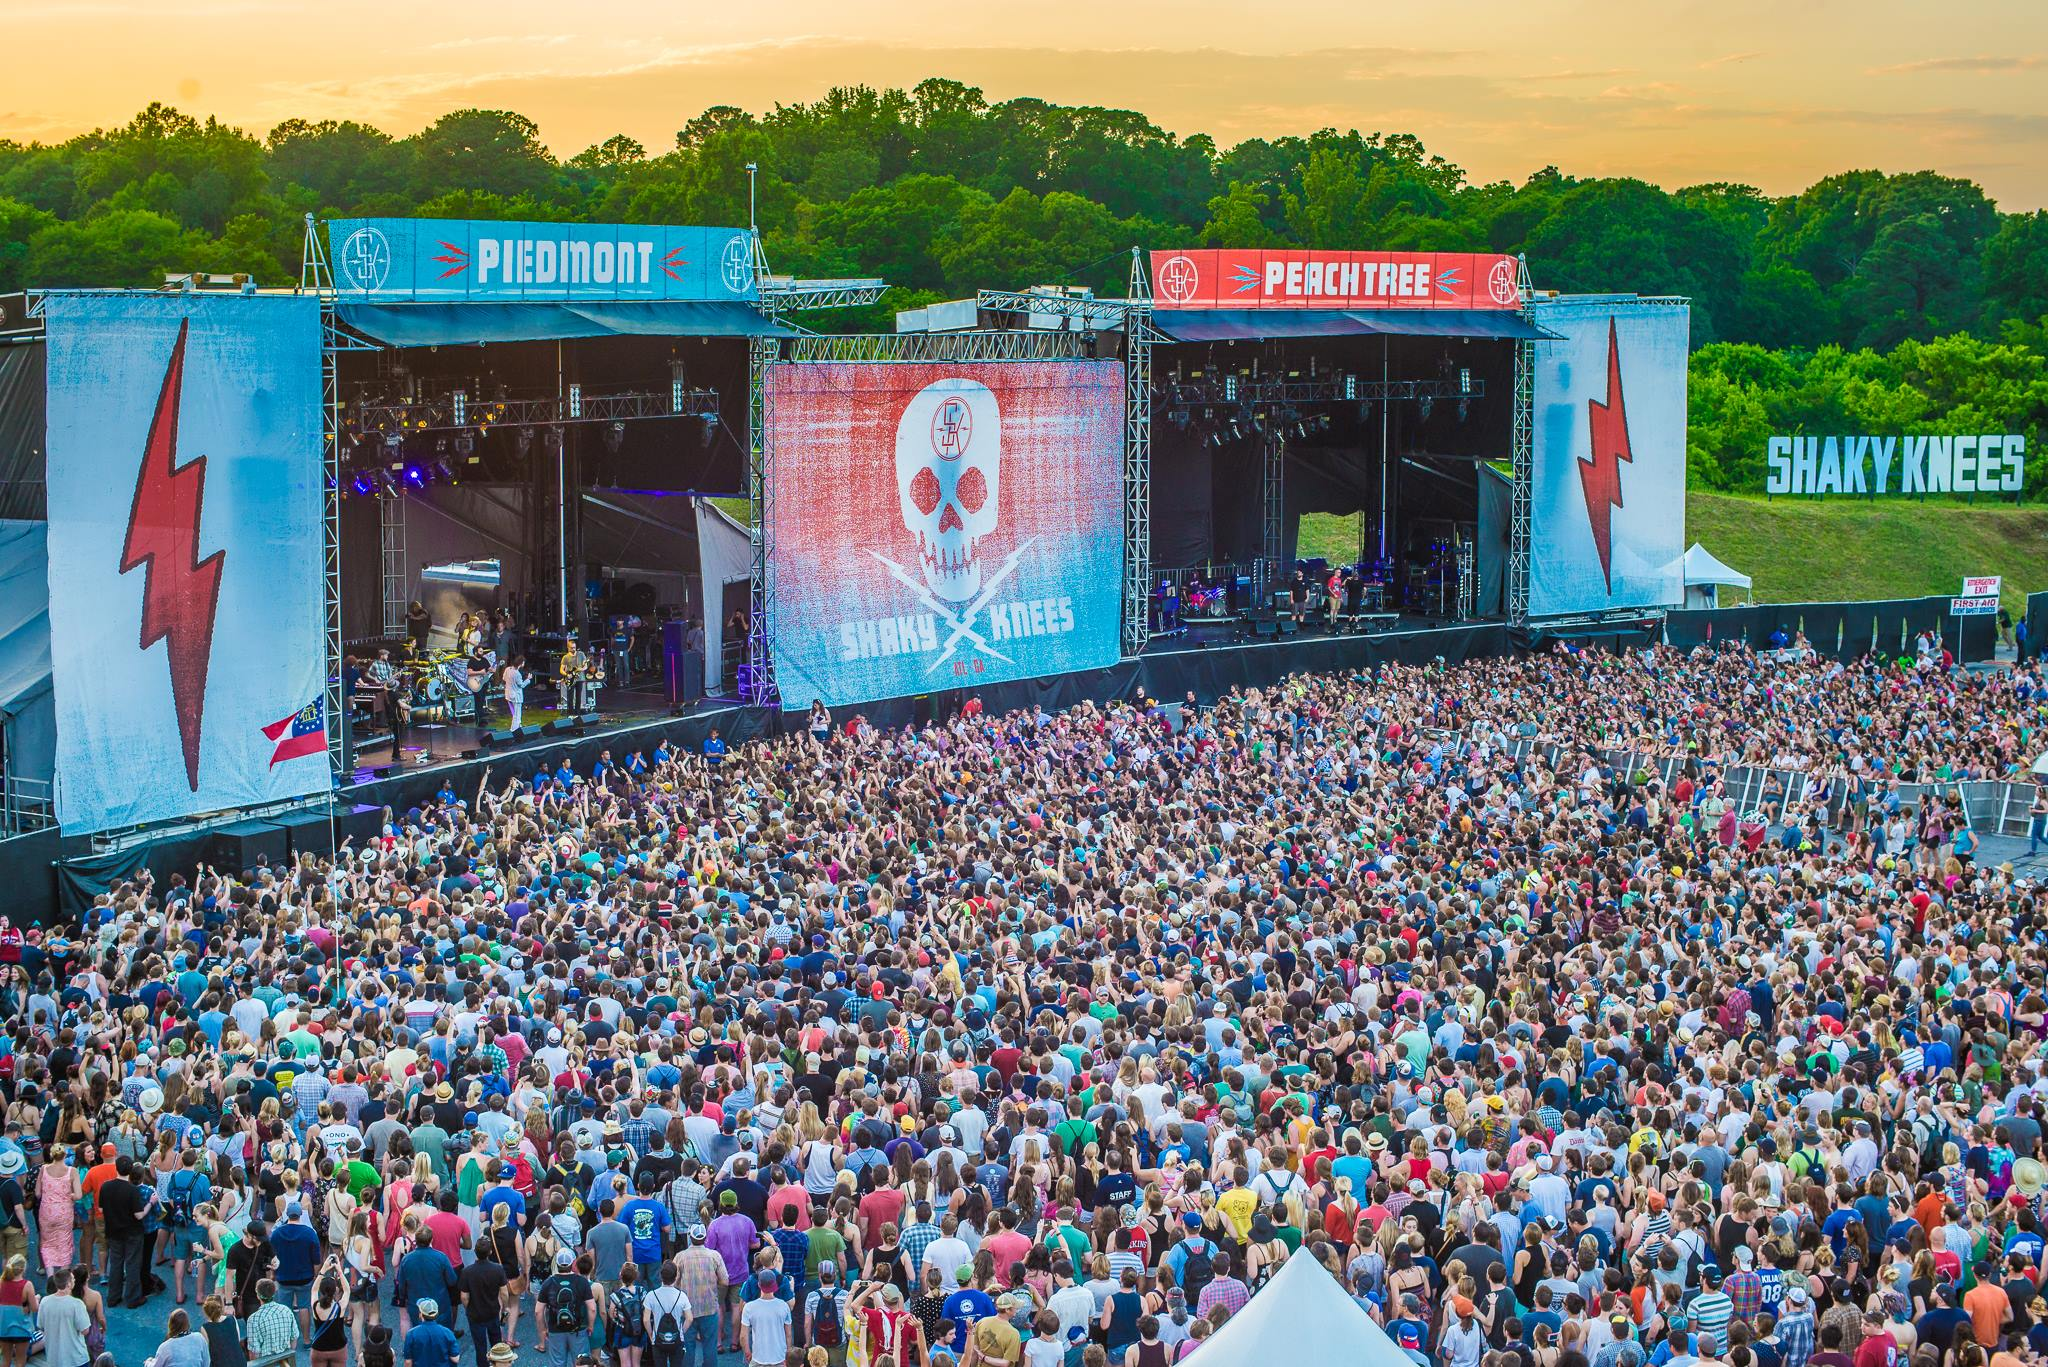 Shaky Knees Music Festival in Atlanta, GA. Source